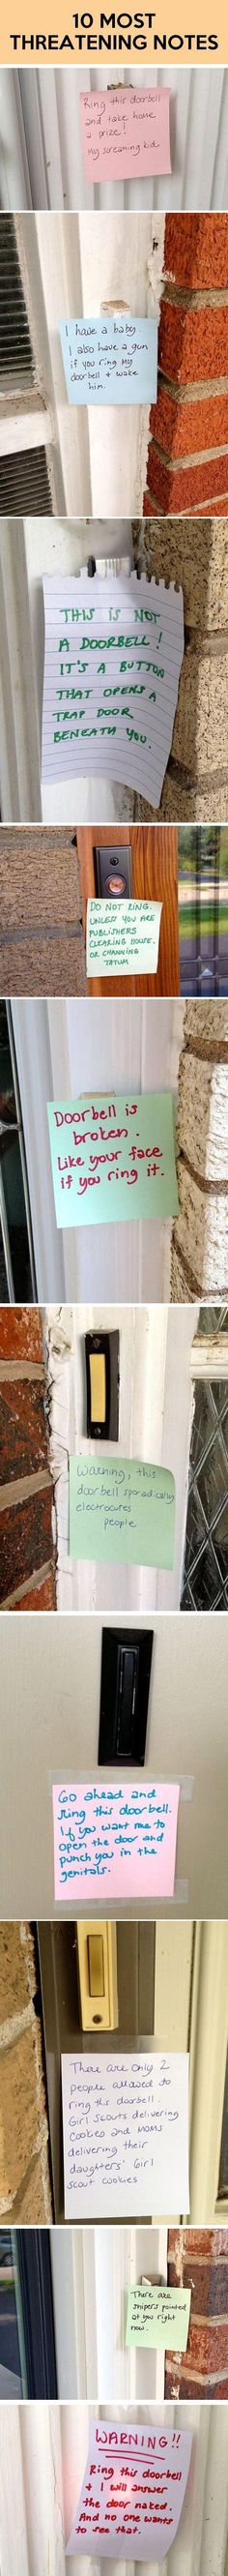 Threatening notes…Funny ways to ask people to not ring the doorbell when baby is sleeping or mommy is recovering from delivery. They could also come in handy while nursing; especially during the first month and growth spurts.